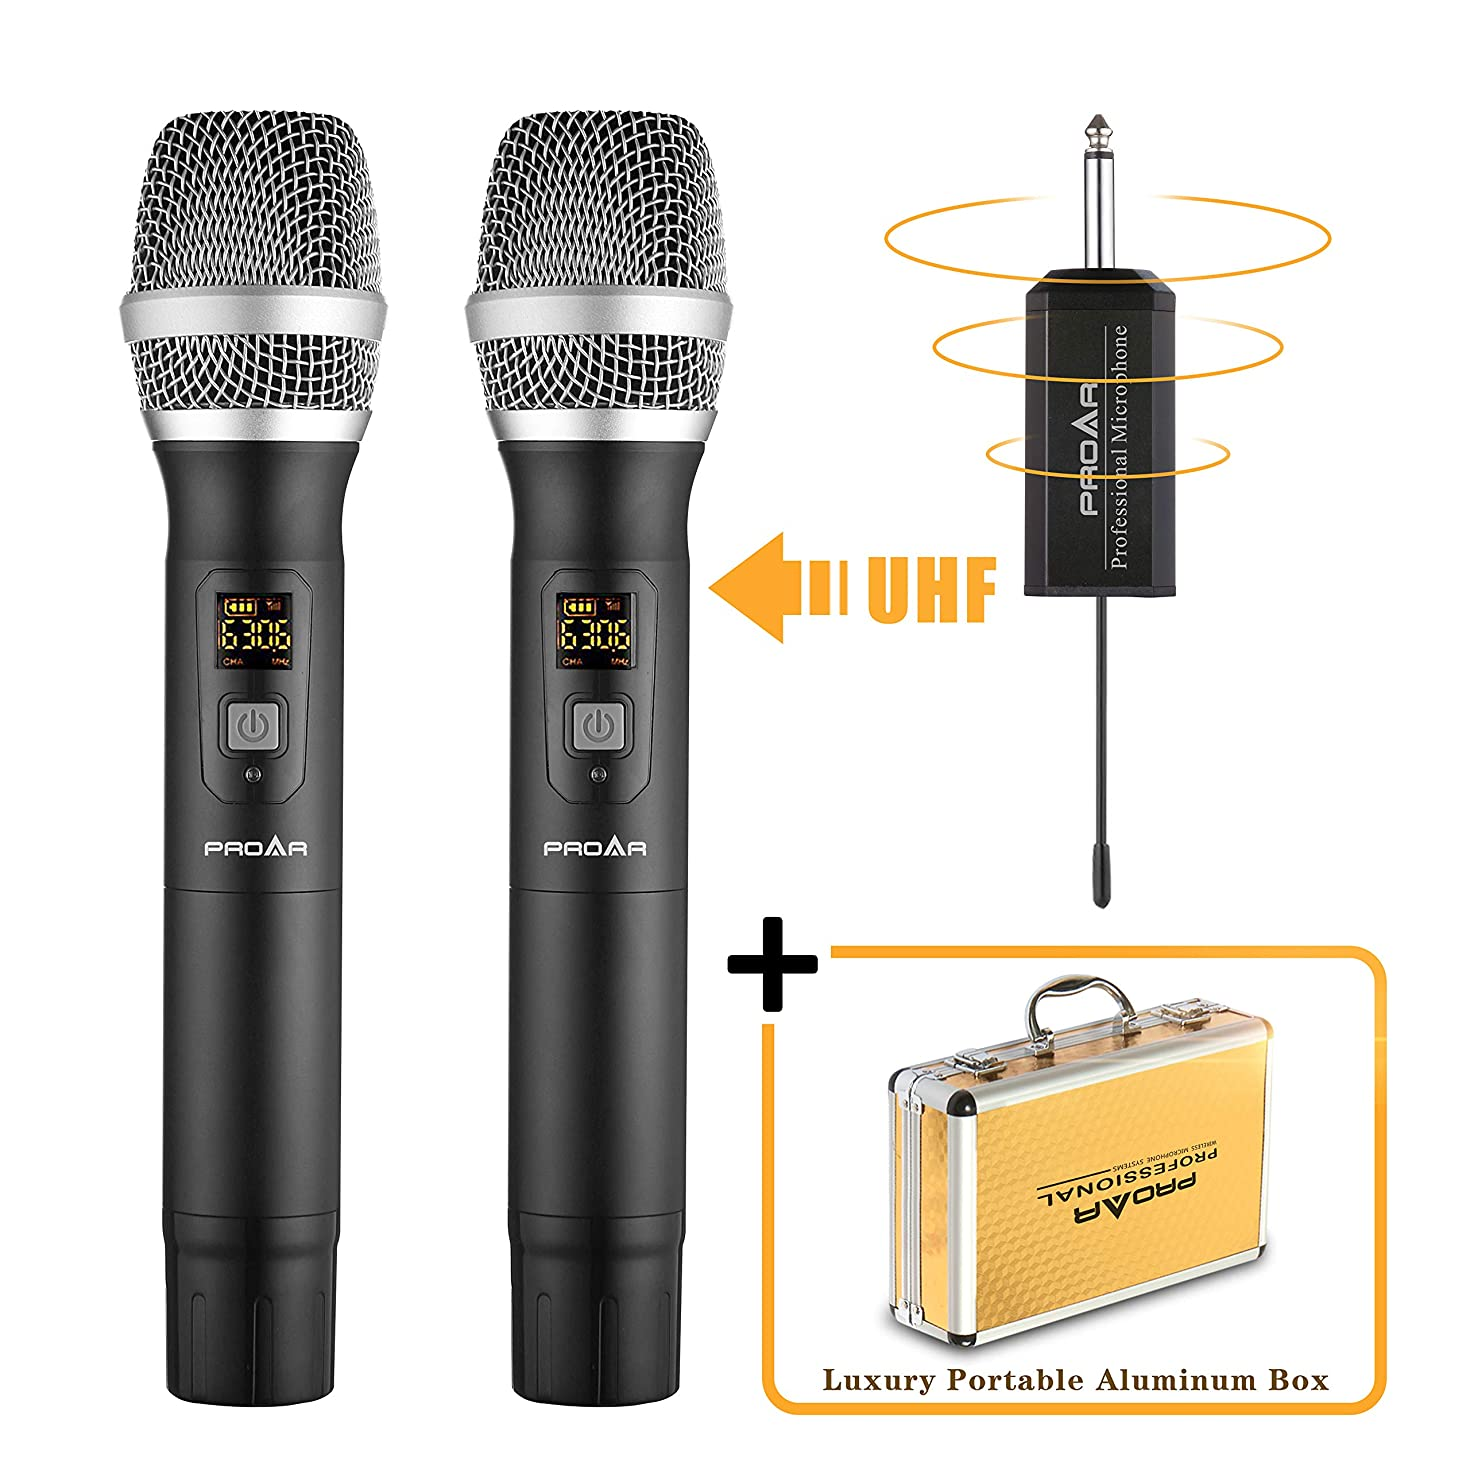 PROAR Professional Handheld Wireless Microphone System Set With Portable Receiver (Dual, Black)